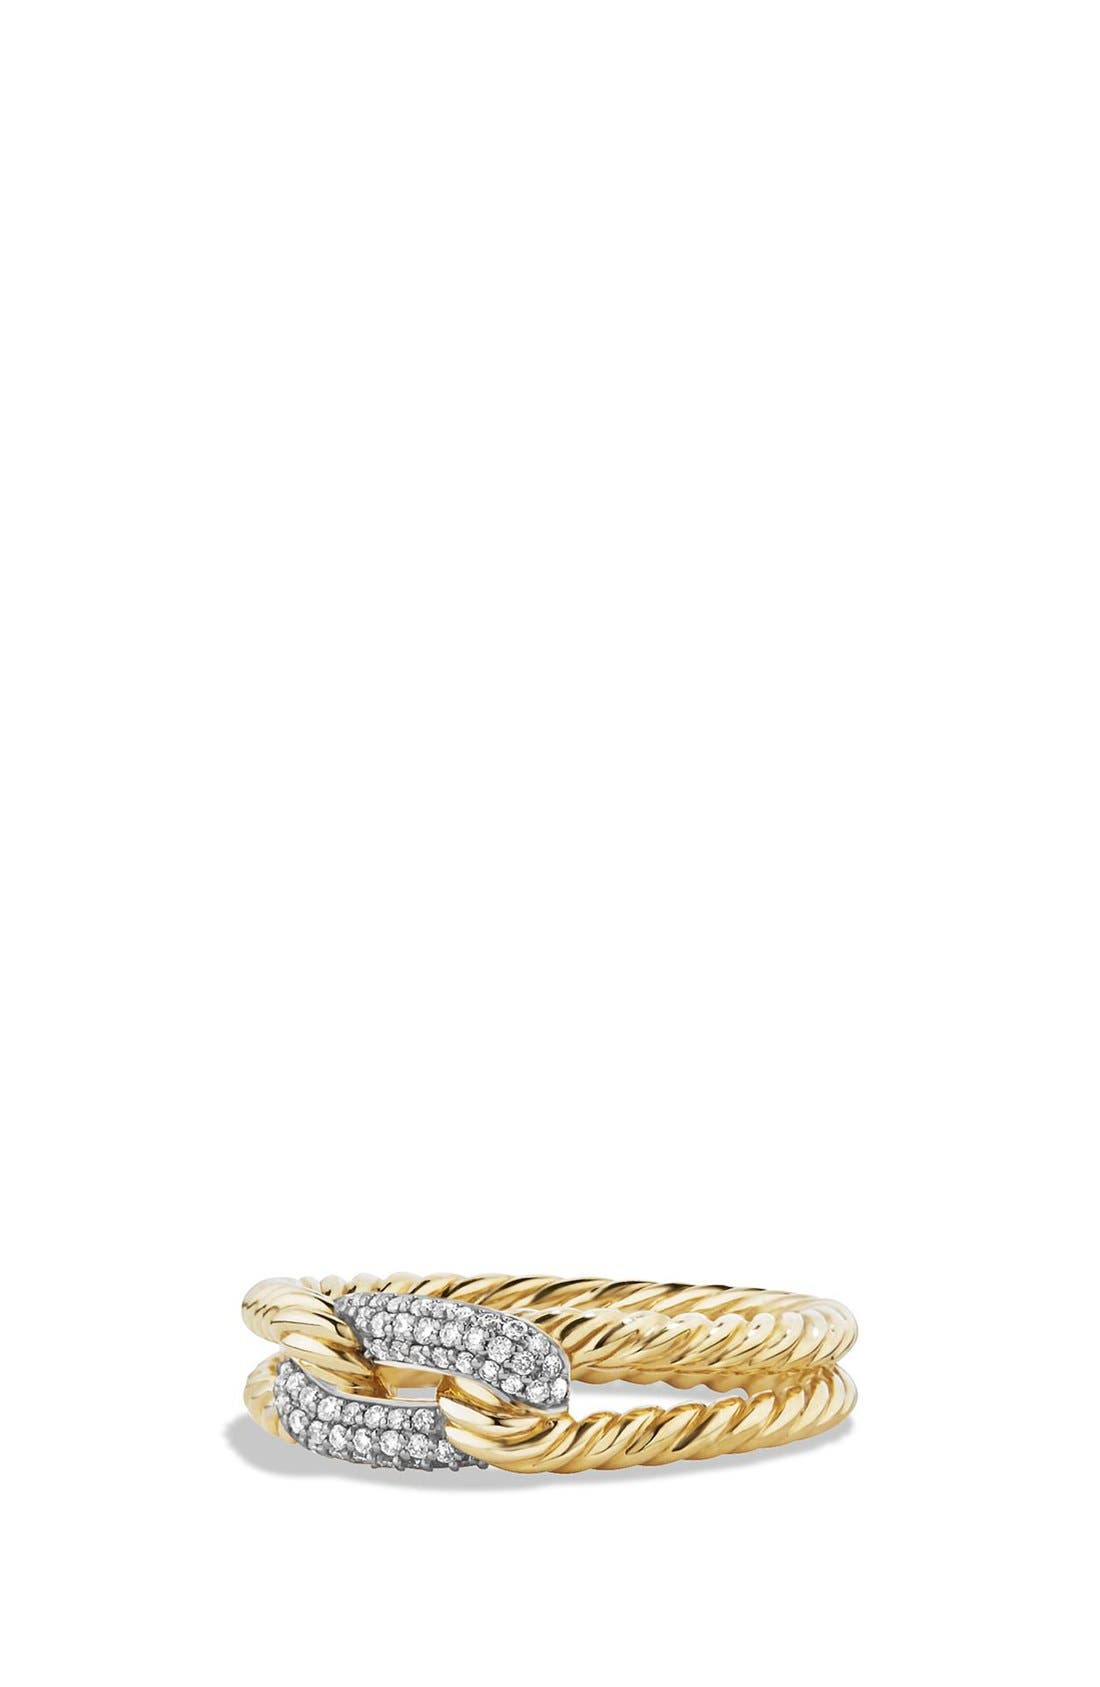 Alternate Image 1 Selected - David Yurman 'Petite Pavé' Loop Ring with Diamonds in 18K Gold